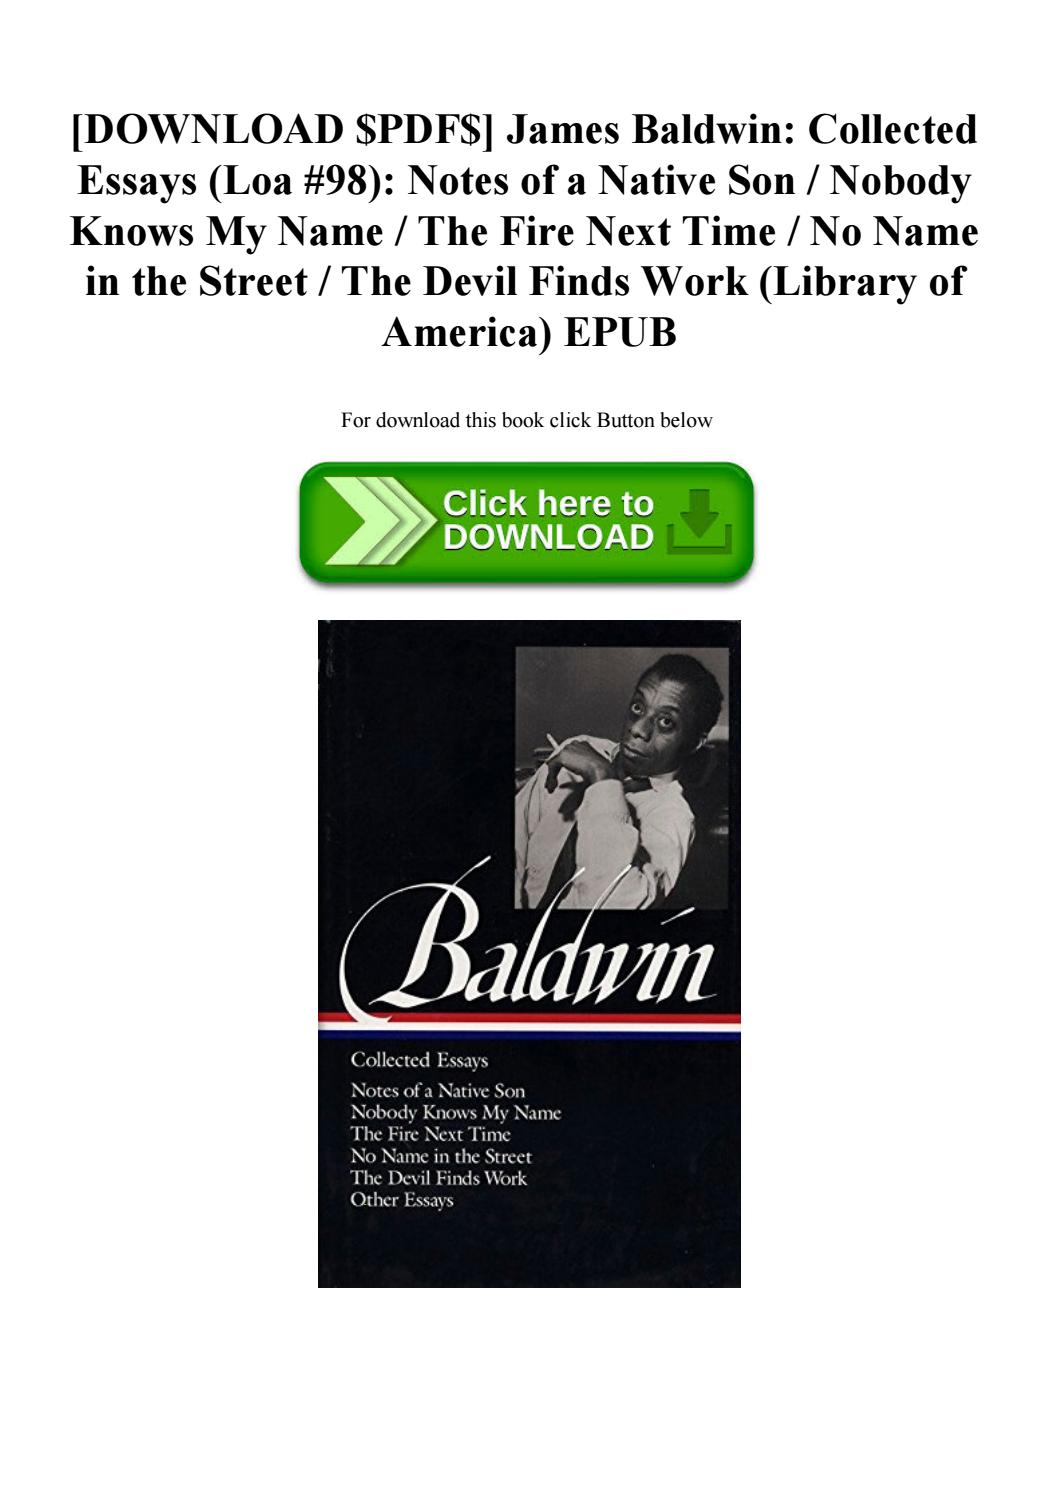 006 Page 1 James Baldwin Collected Essays Essay Wondrous Google Books Pdf Table Of Contents Full